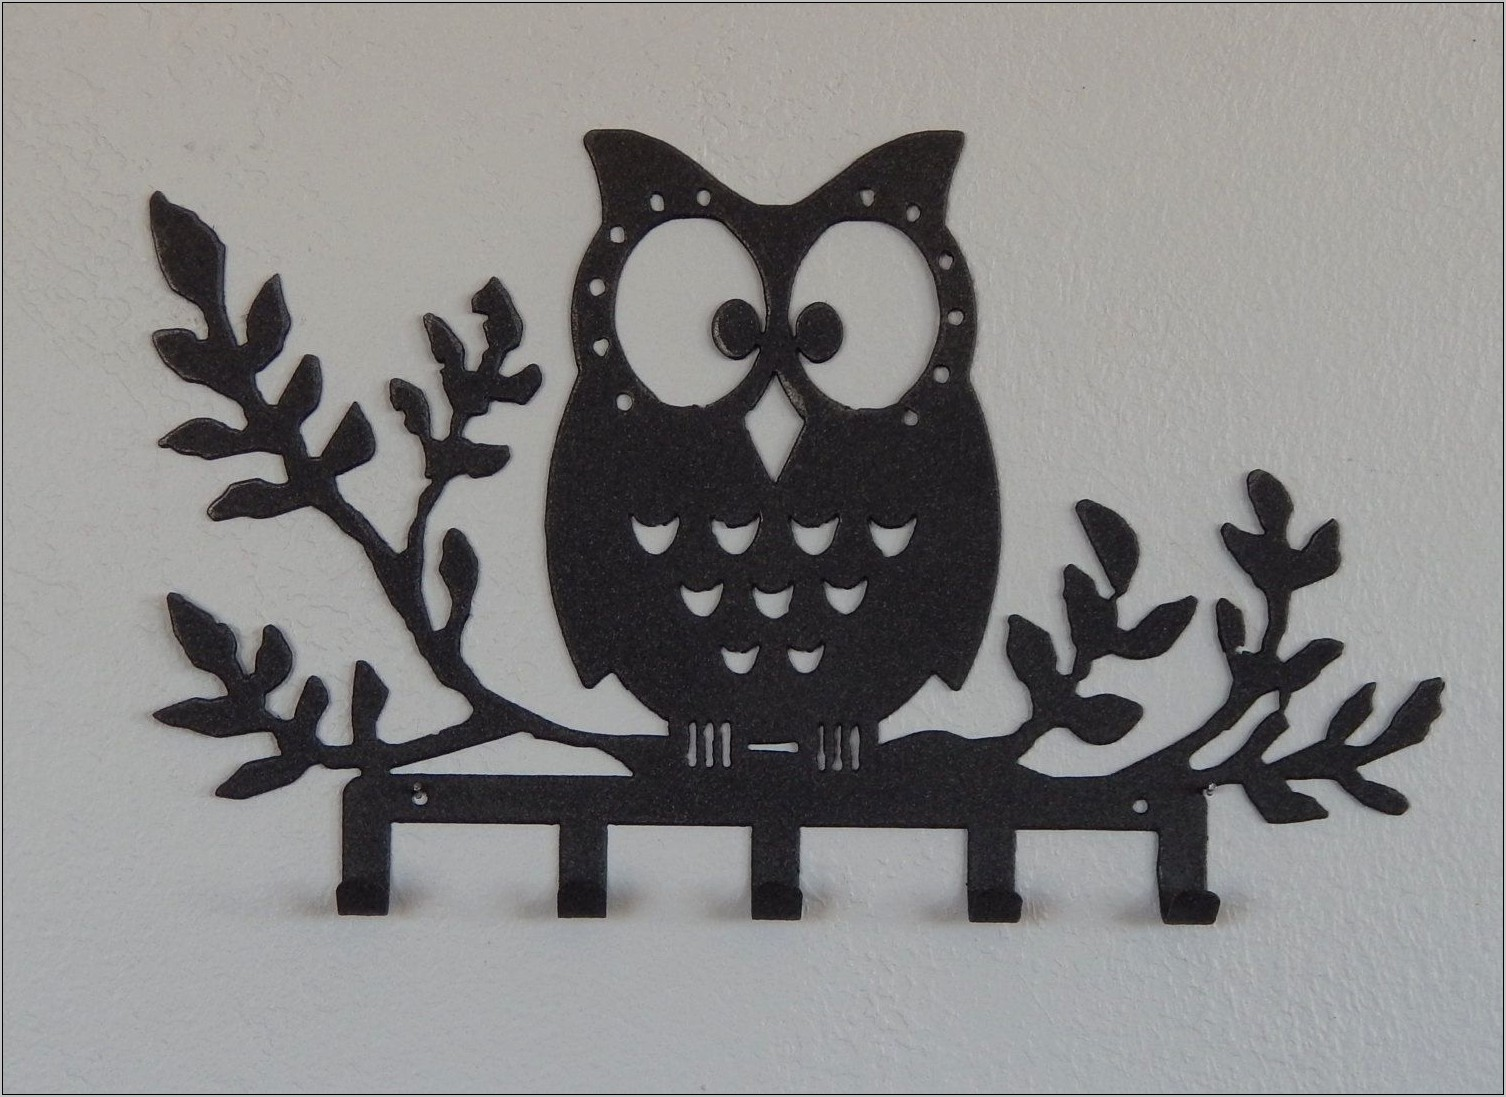 Kitchen Wall Decor Of Owls